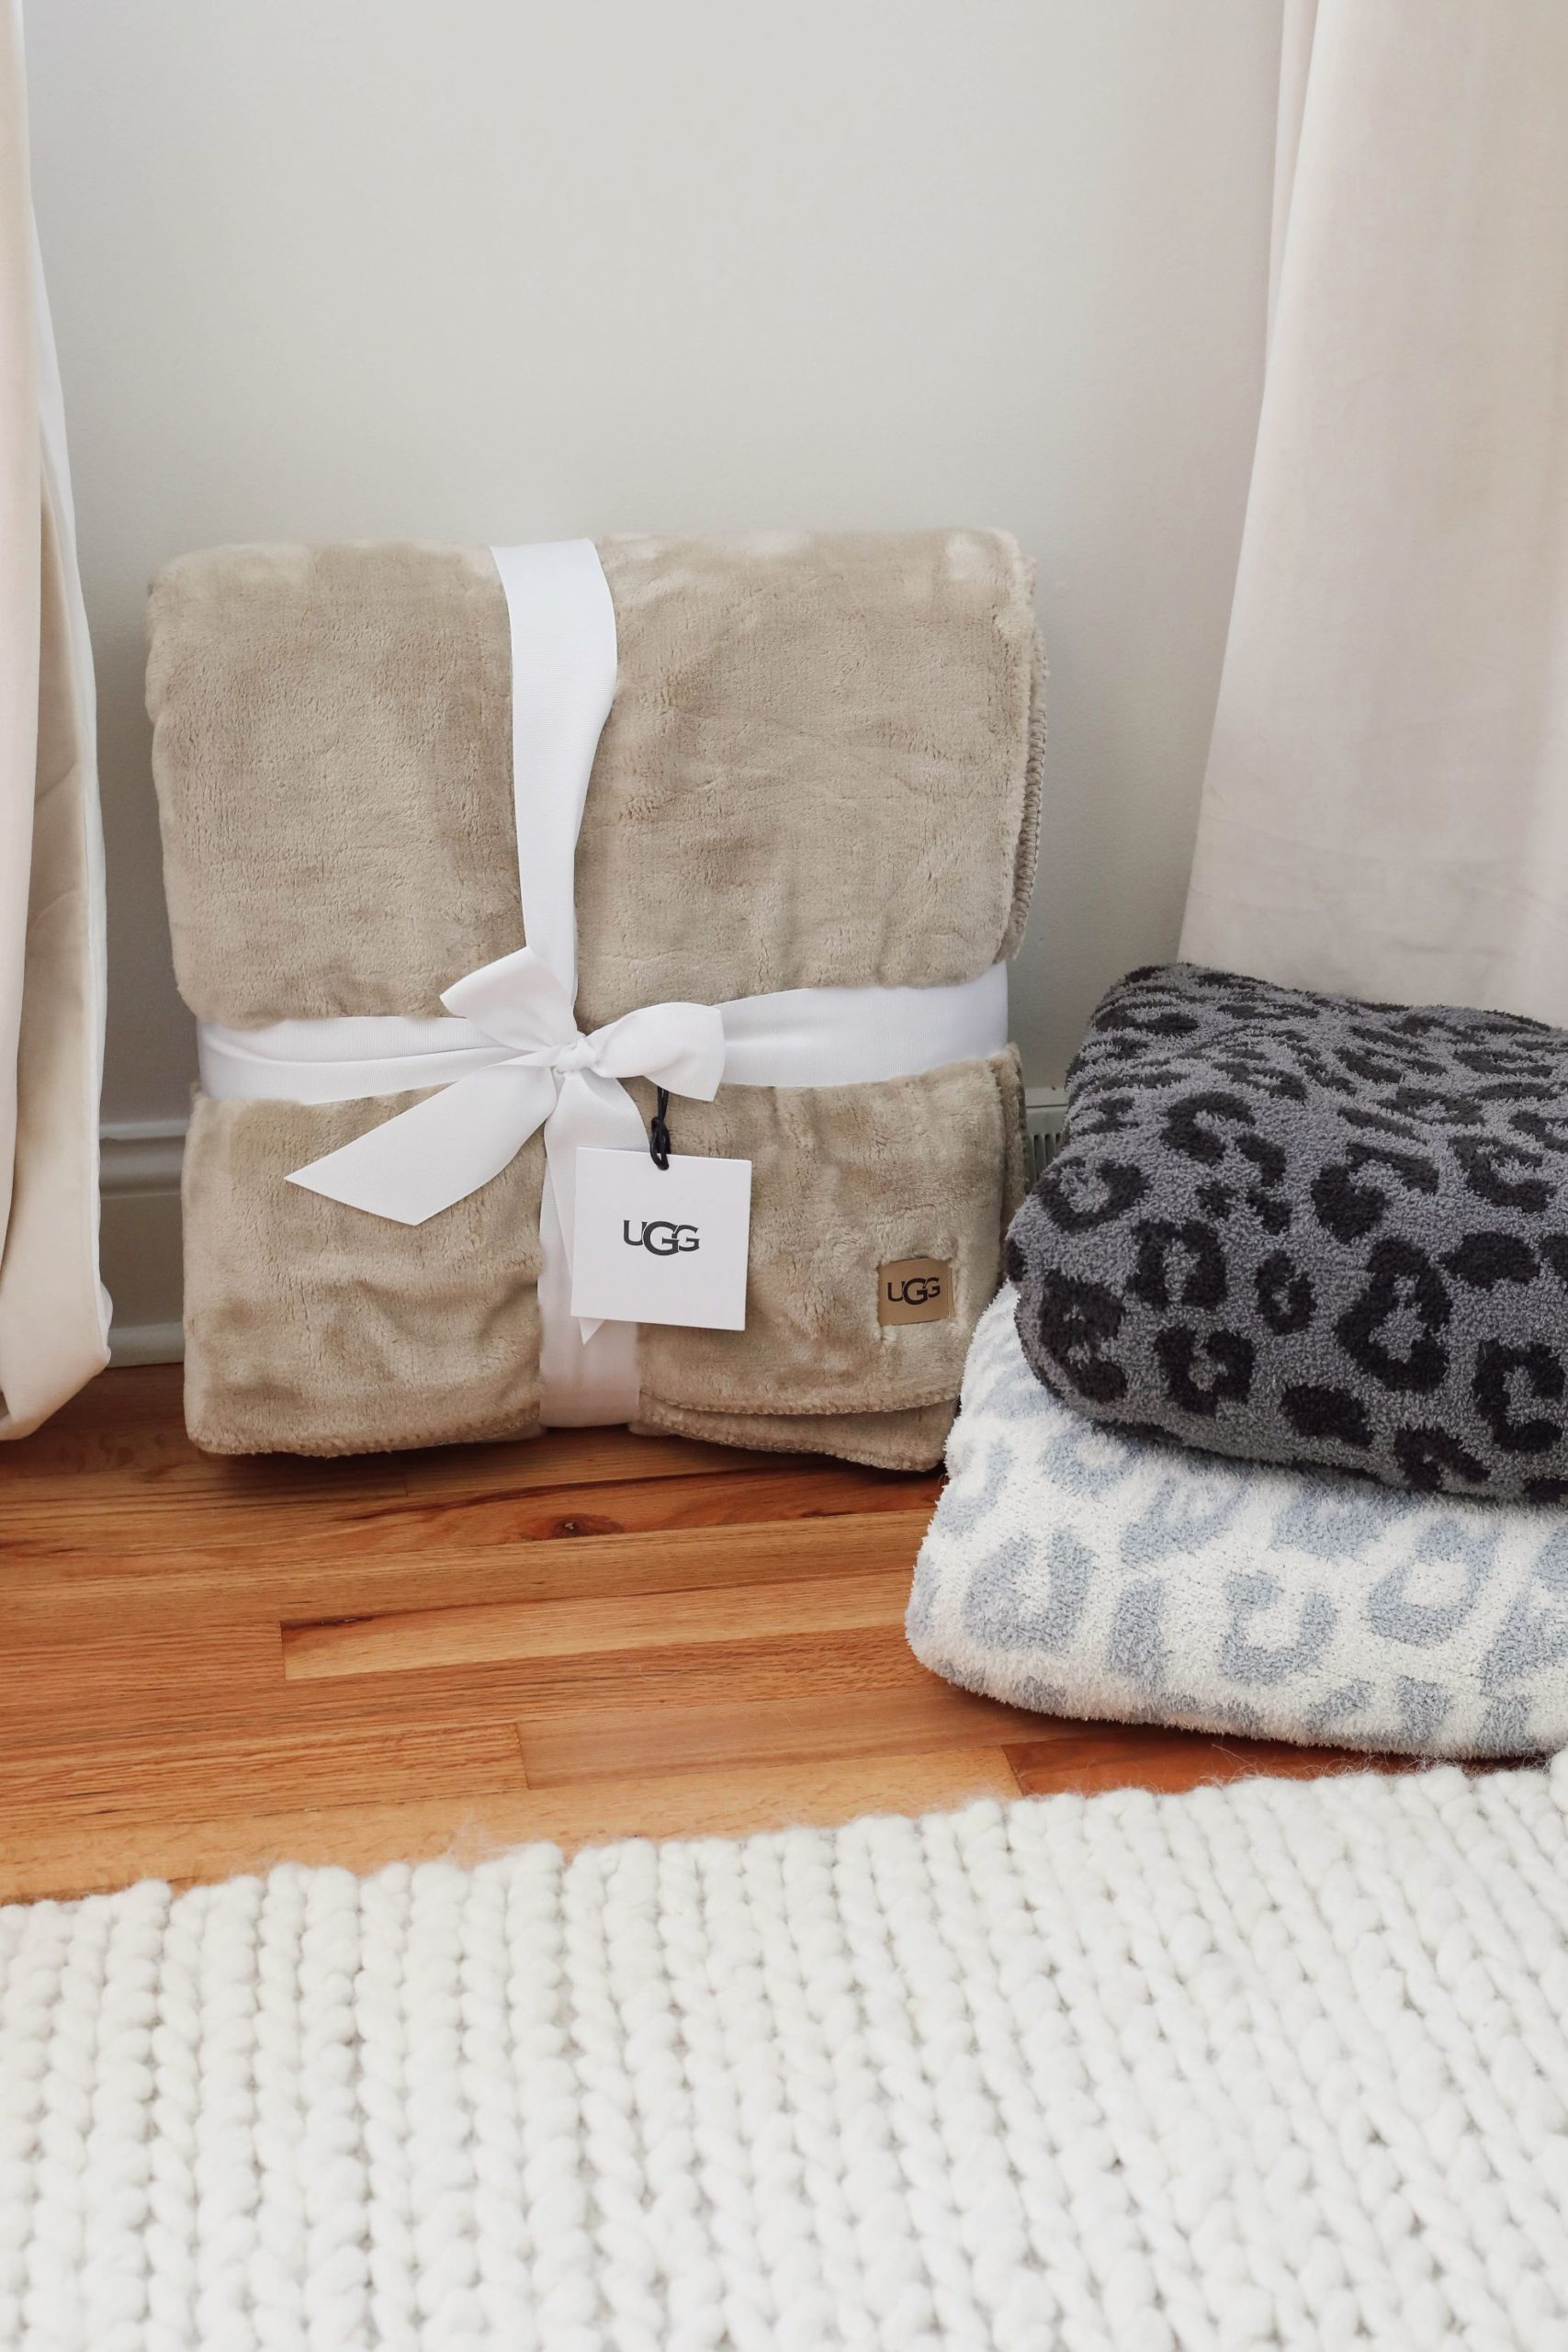 Nordstrom Anniversary Sale nsale try on haul home decor blabkets Lauren Lindmark daily dose of charm